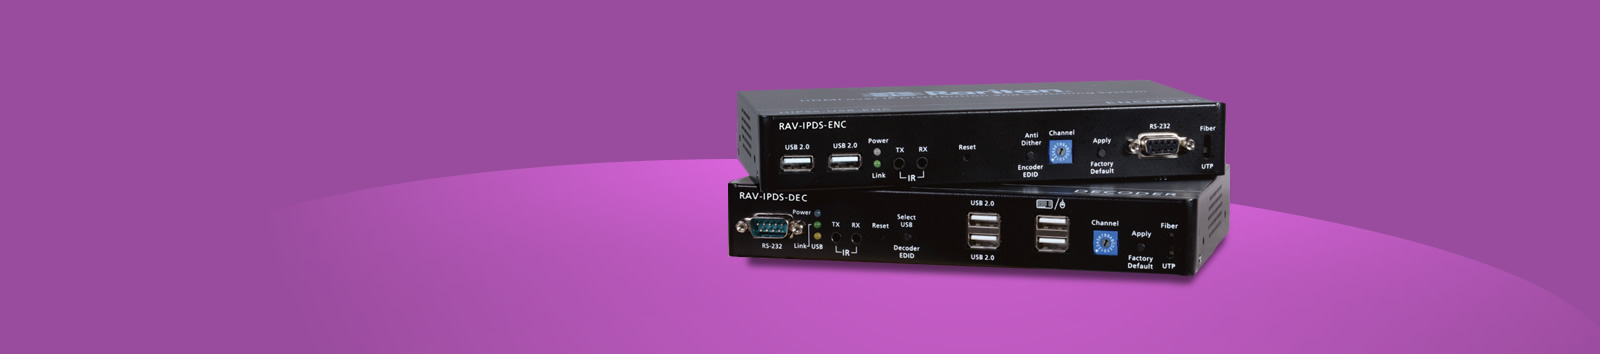 Raritan RAV-IP HDMI Extender Solution - CATx up to 330ft and Fiber Connections up to 6.2 miles - Transparent USB & Audio Support